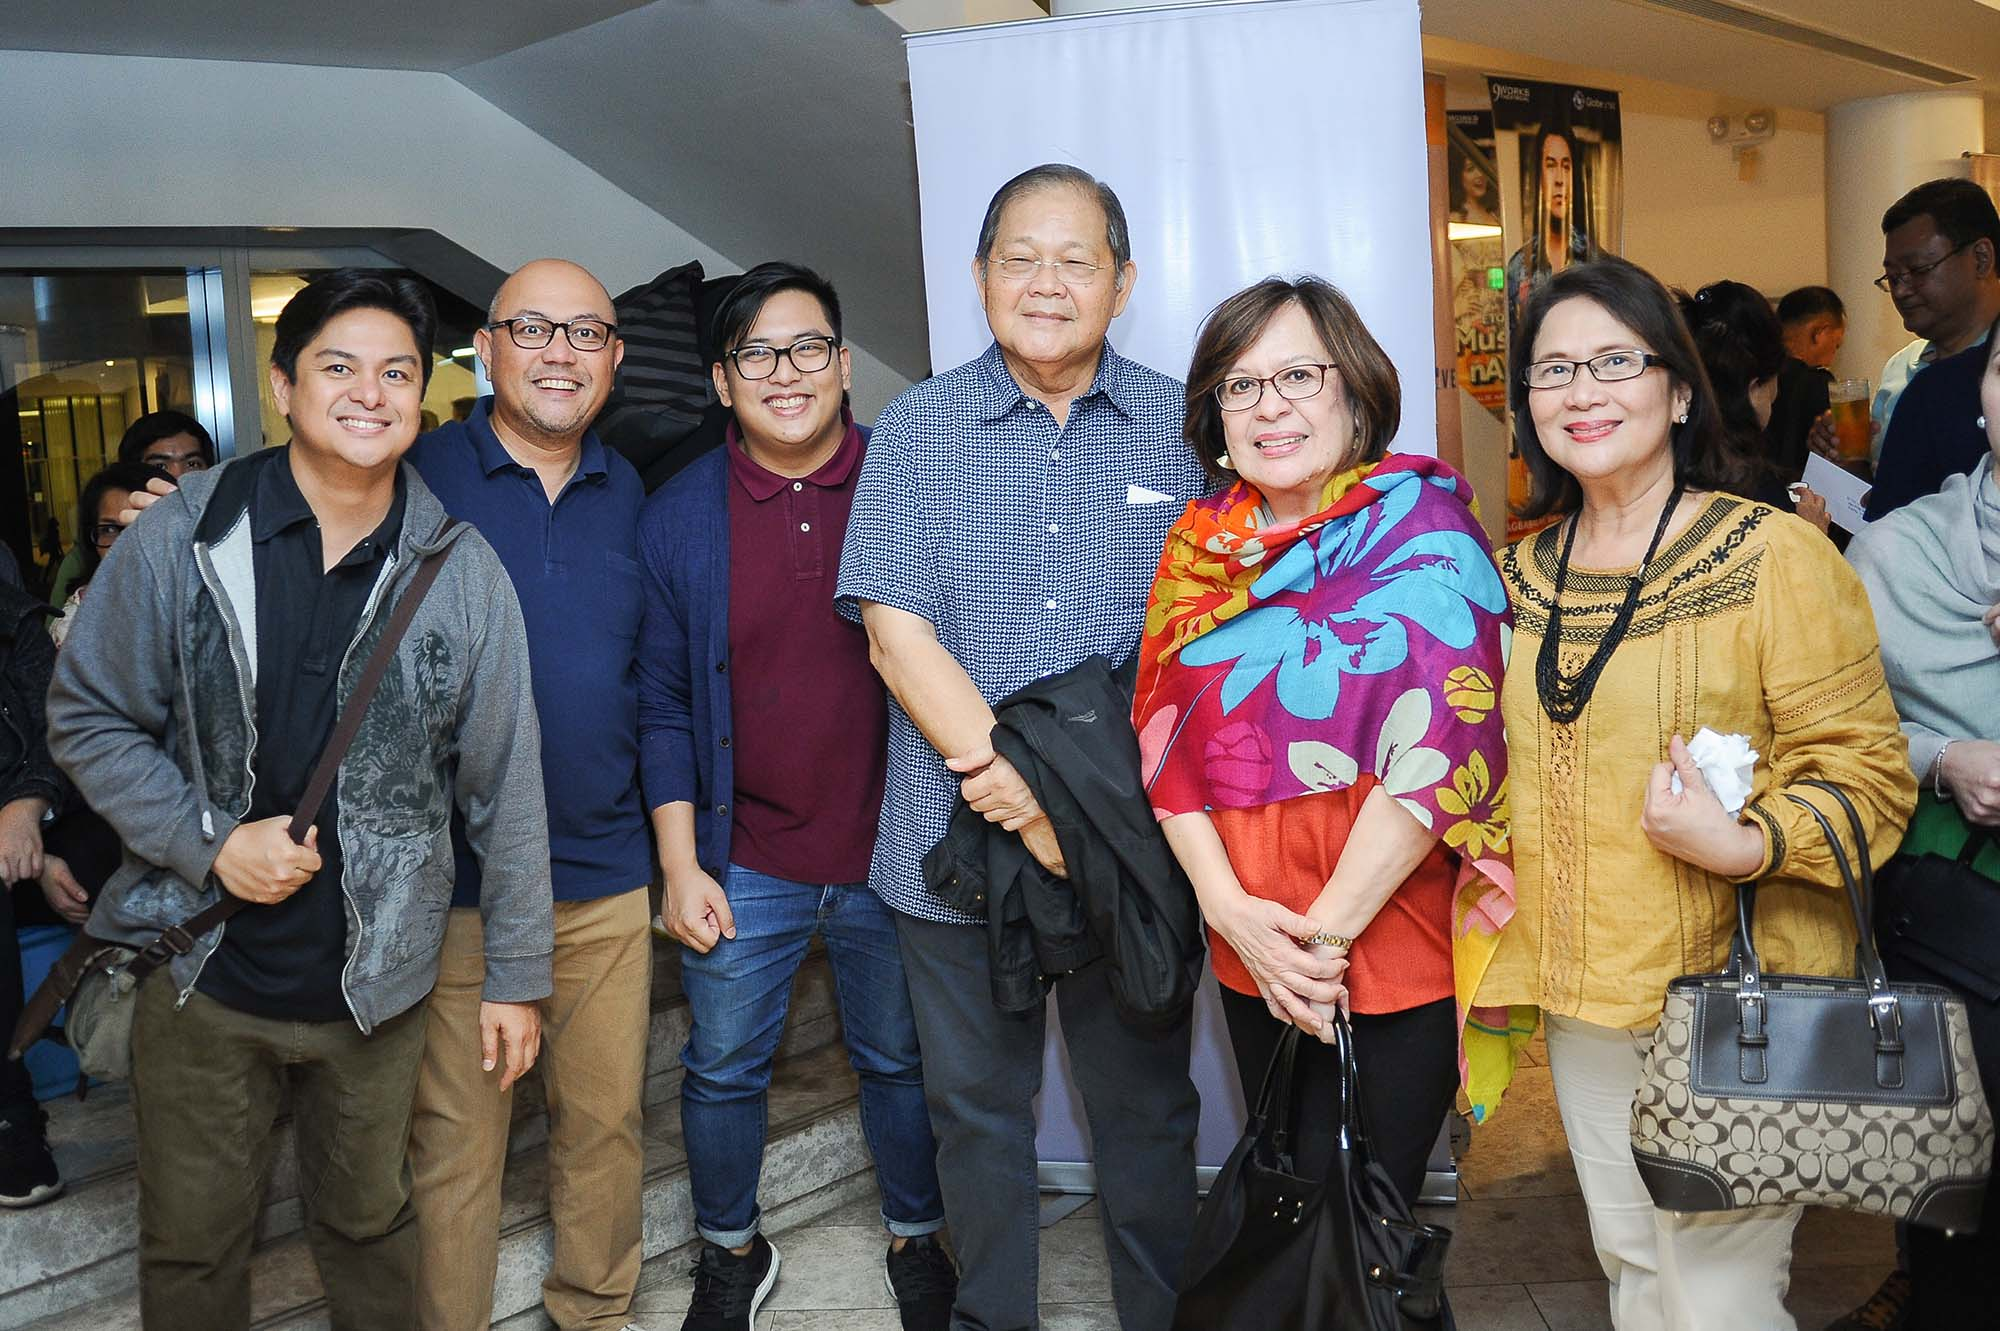 In Photo 3 From L to R: Allan Tuazon (Homecoming 2019 Chair), Edric Hernandez (MBM 1999) and guest, Prof. Jun Borromeo (MM 1977) and Wife, Ms. Coratec Jimenez (MDM 2002)